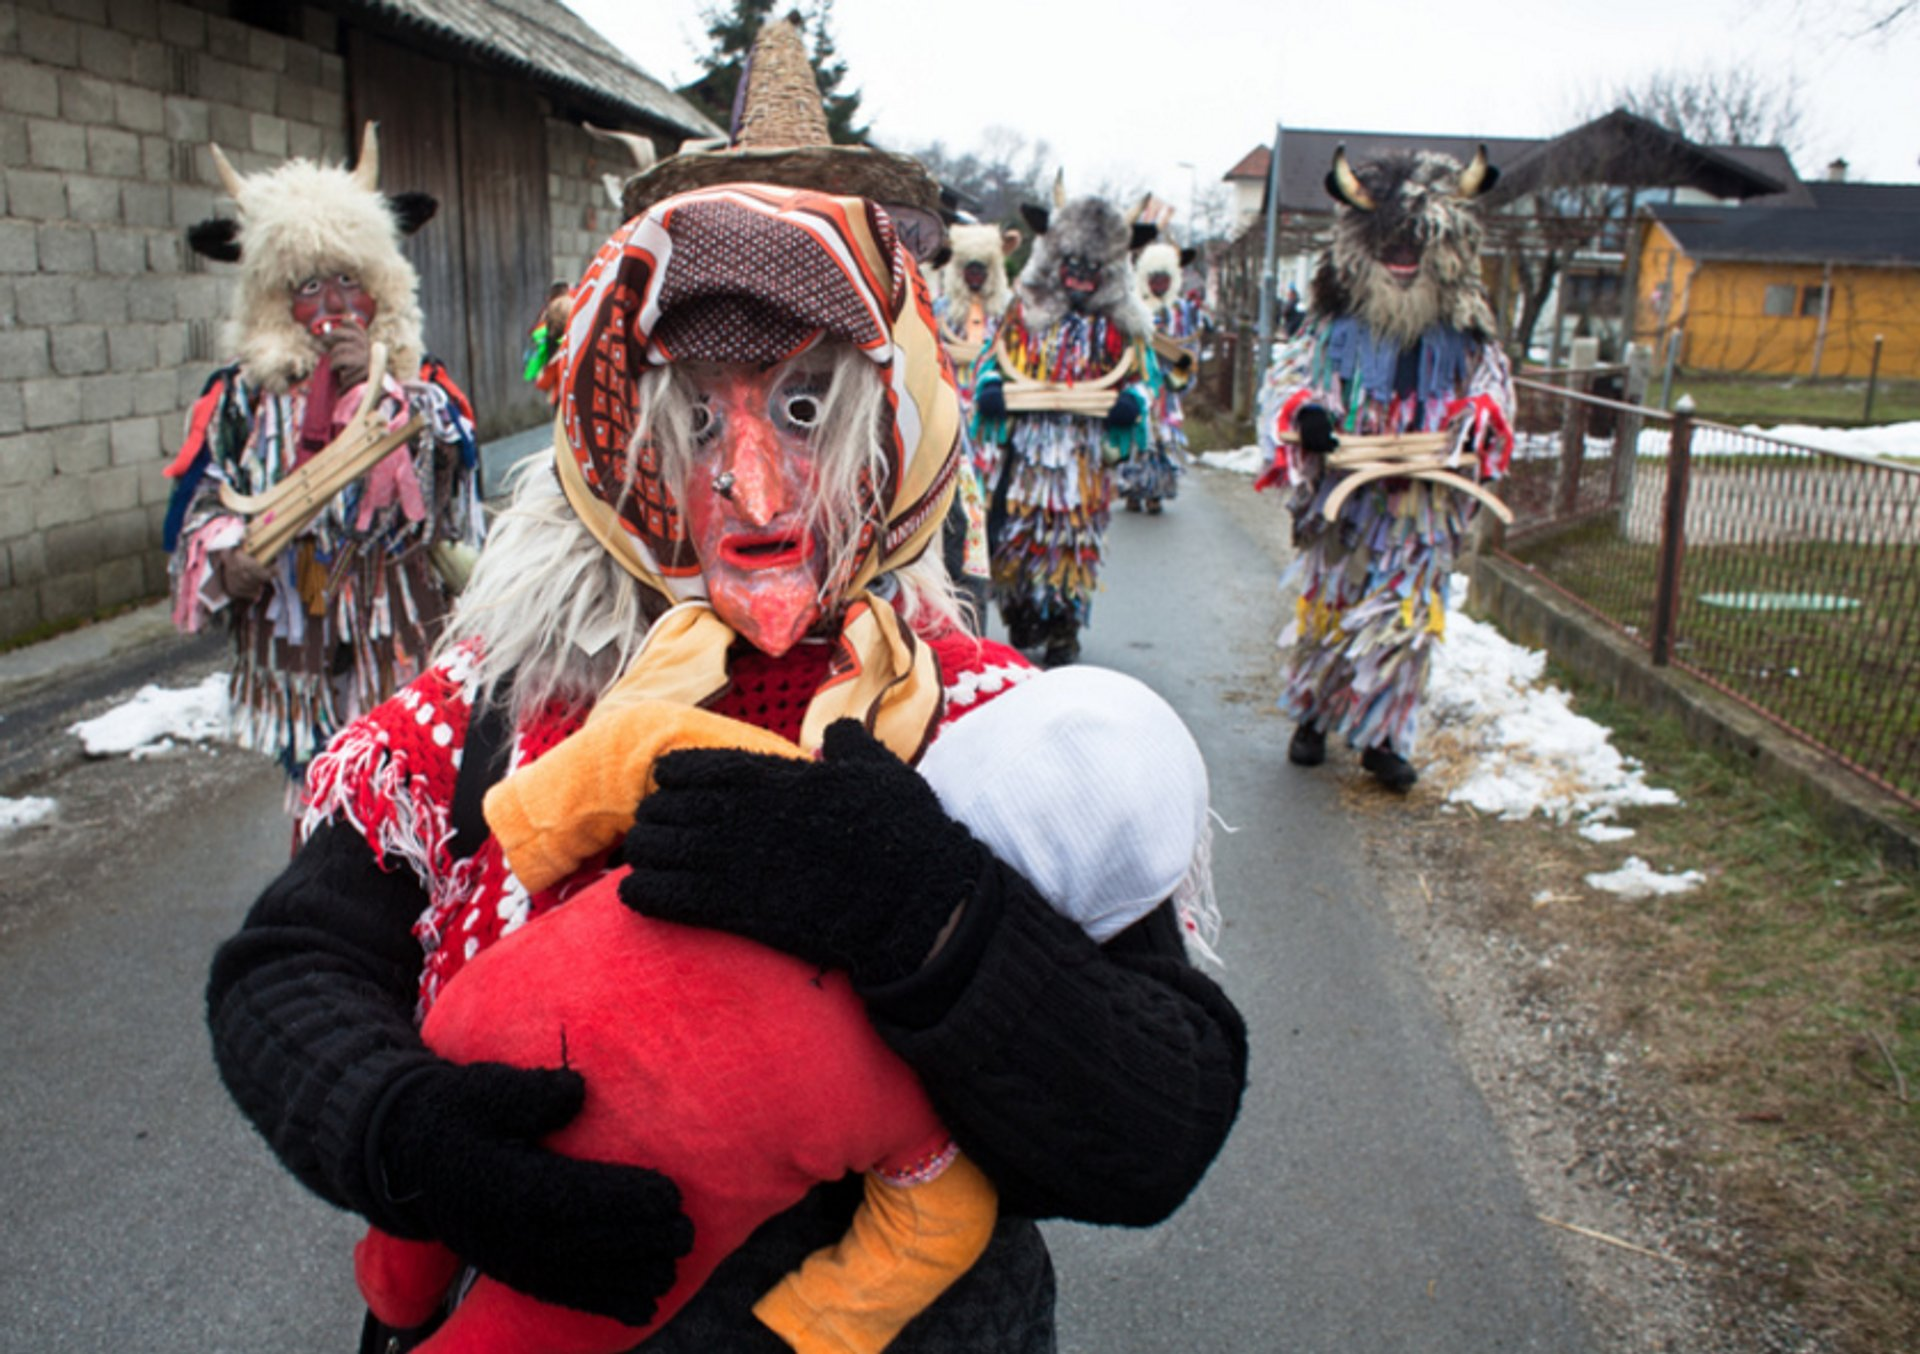 Best time to see Pust Carnival in Cerknica in Slovenia